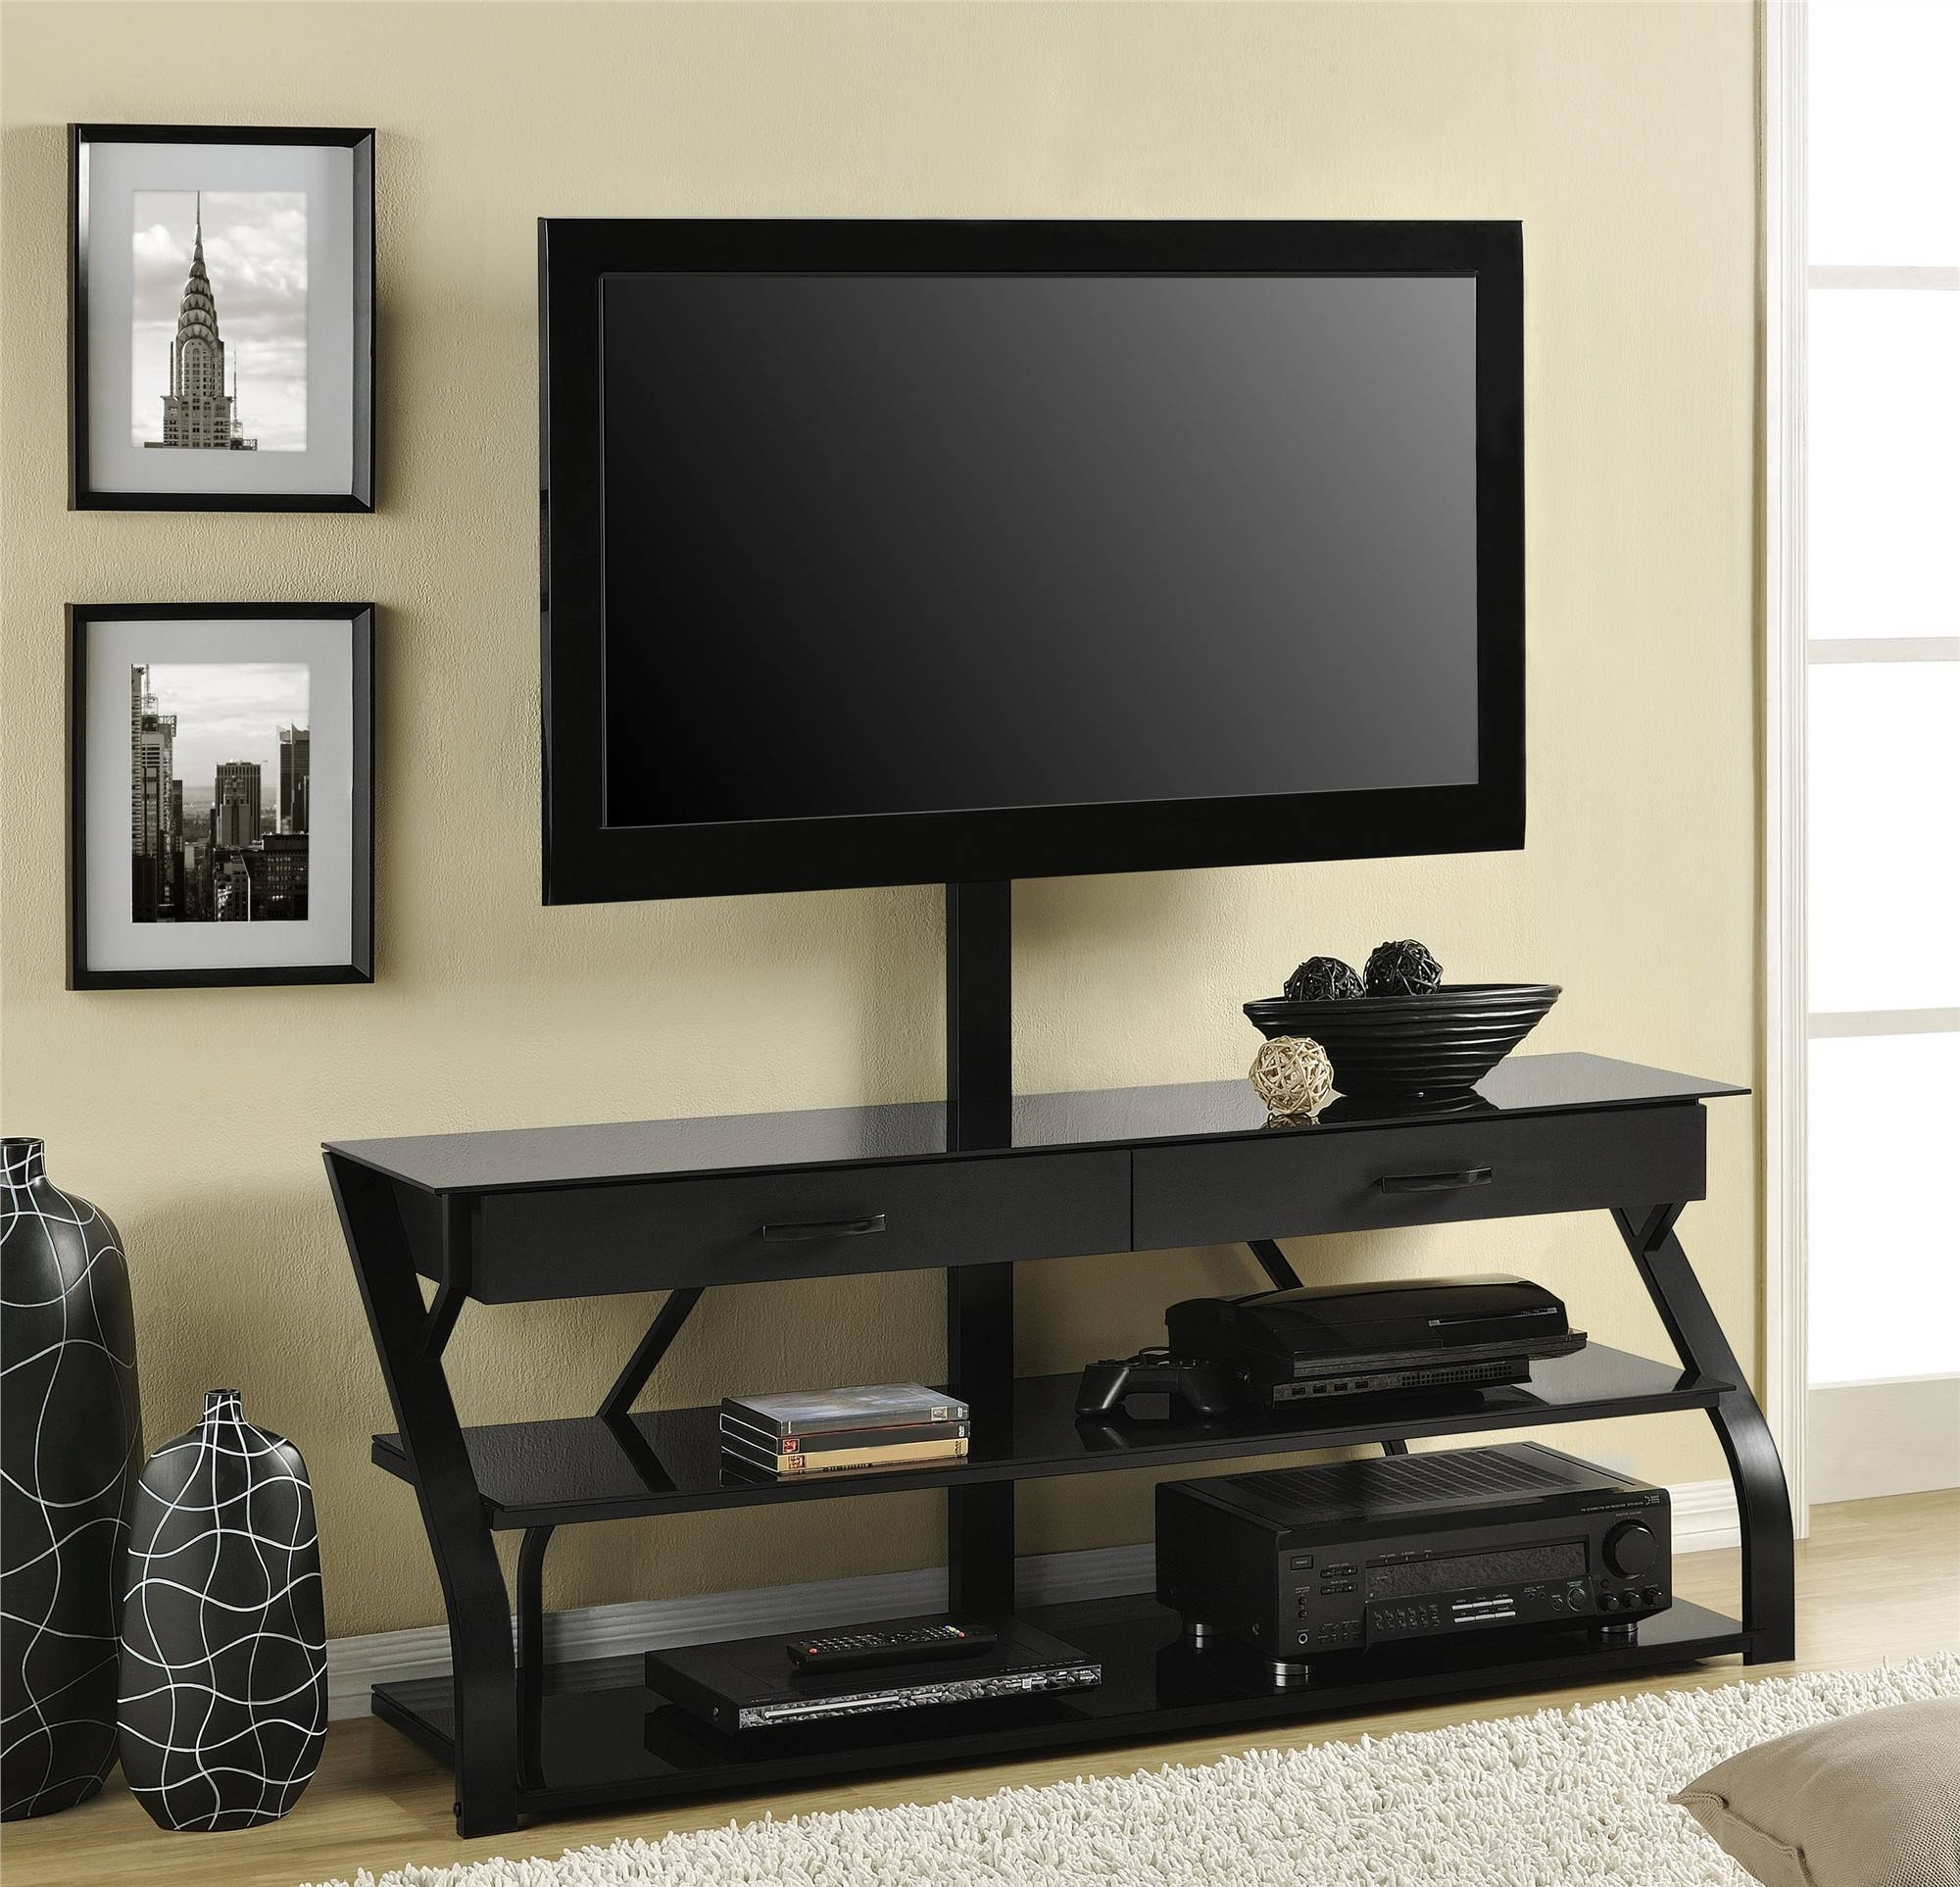 Tall Tv Stand For Bedroom Altra Furniture File Cabinet Also regarding Stylish Tv Stands (Image 9 of 15)